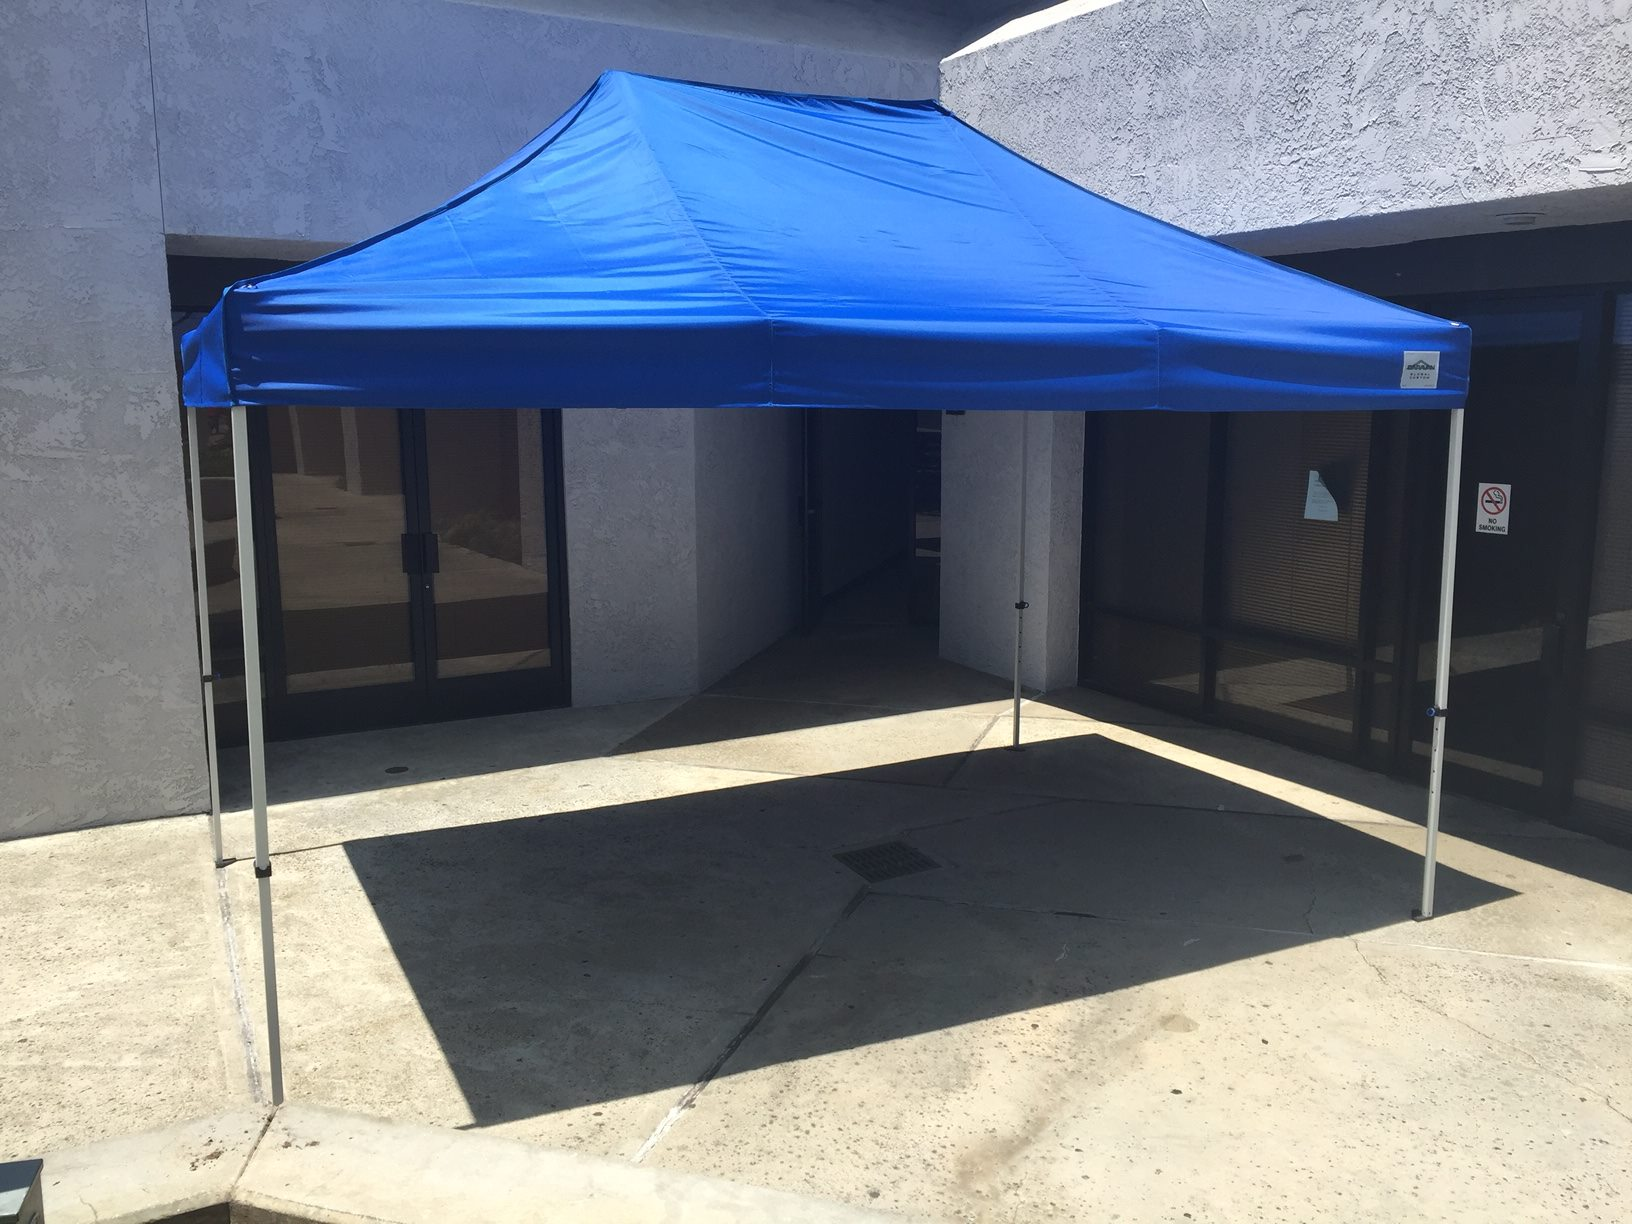 10'x15' blue pop-up tent